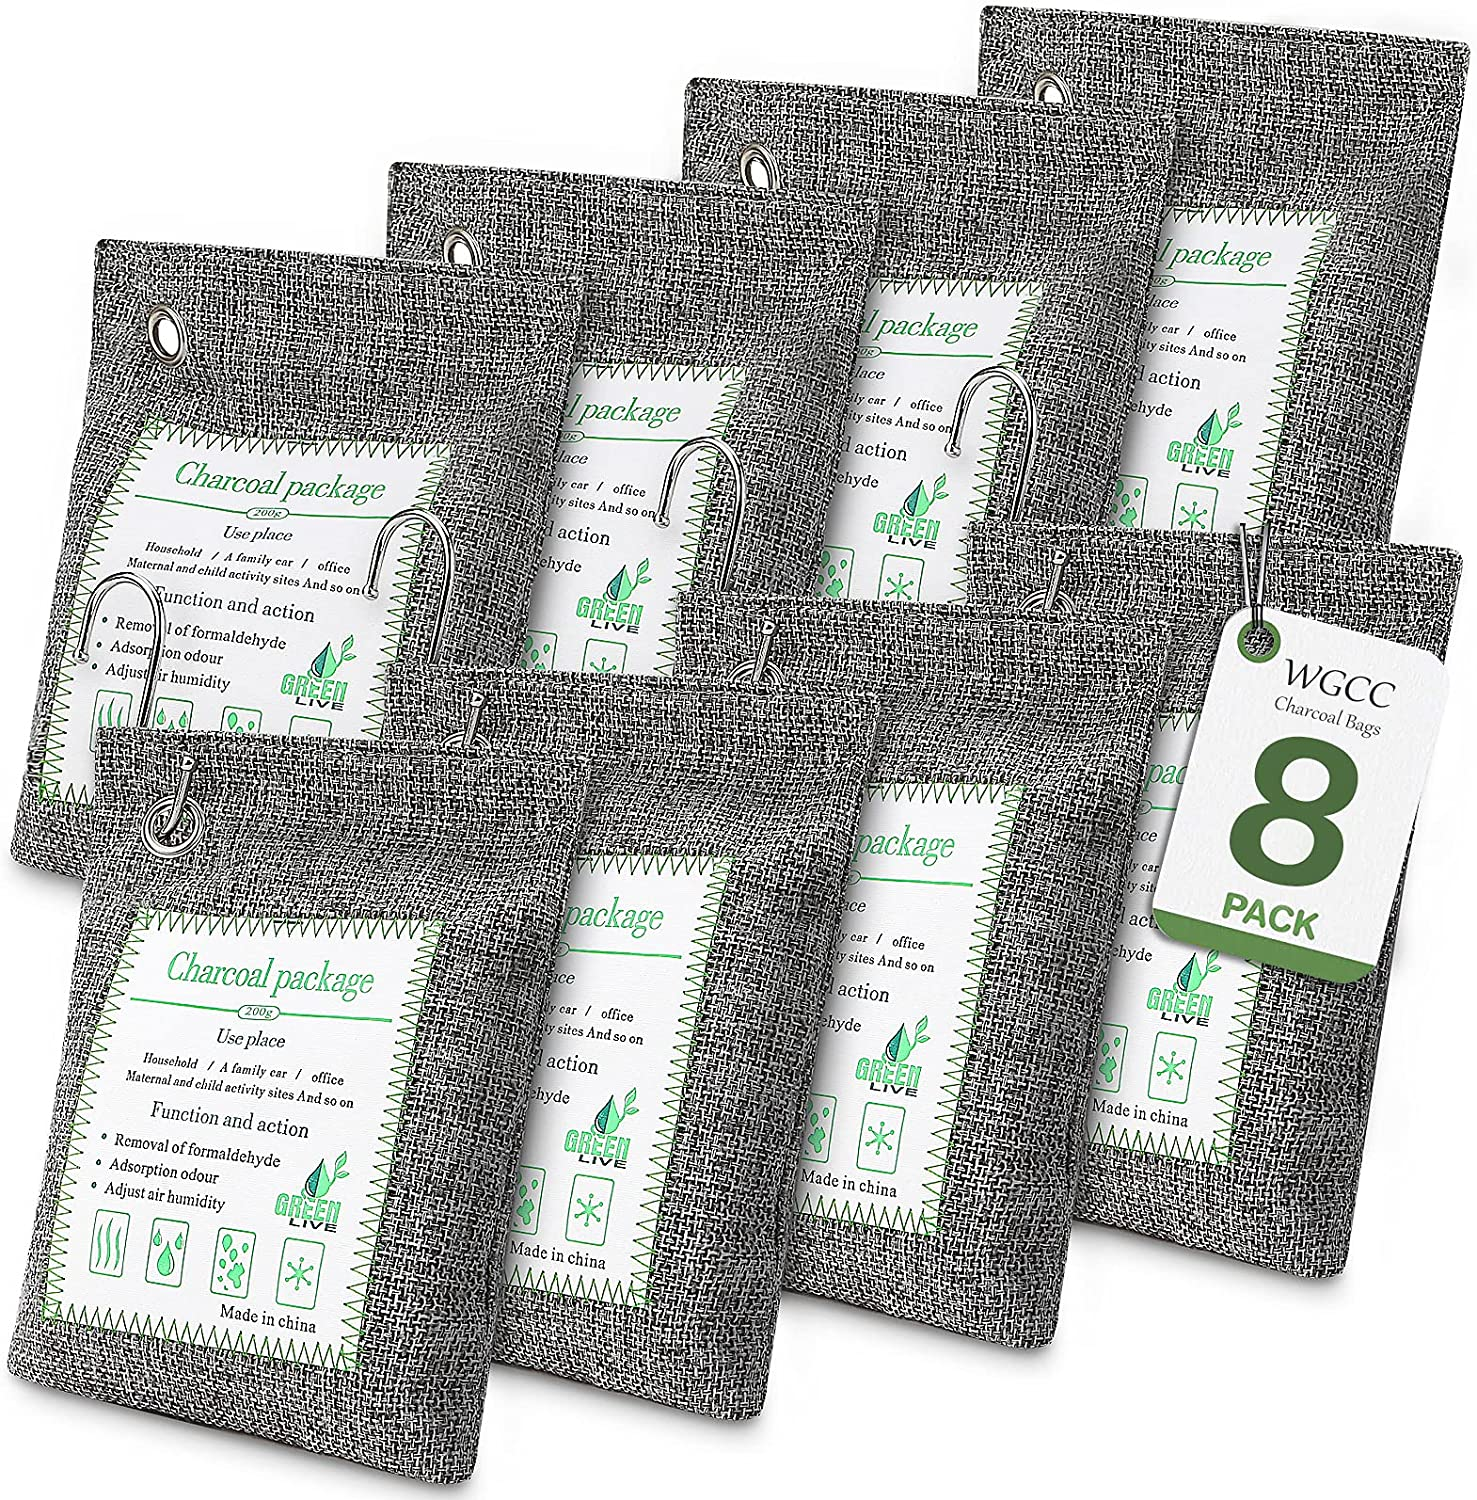 WGCC 8 Pack Activated Bamboo Charcoal New item O Bags Air Purifying 200g Super intense SALE